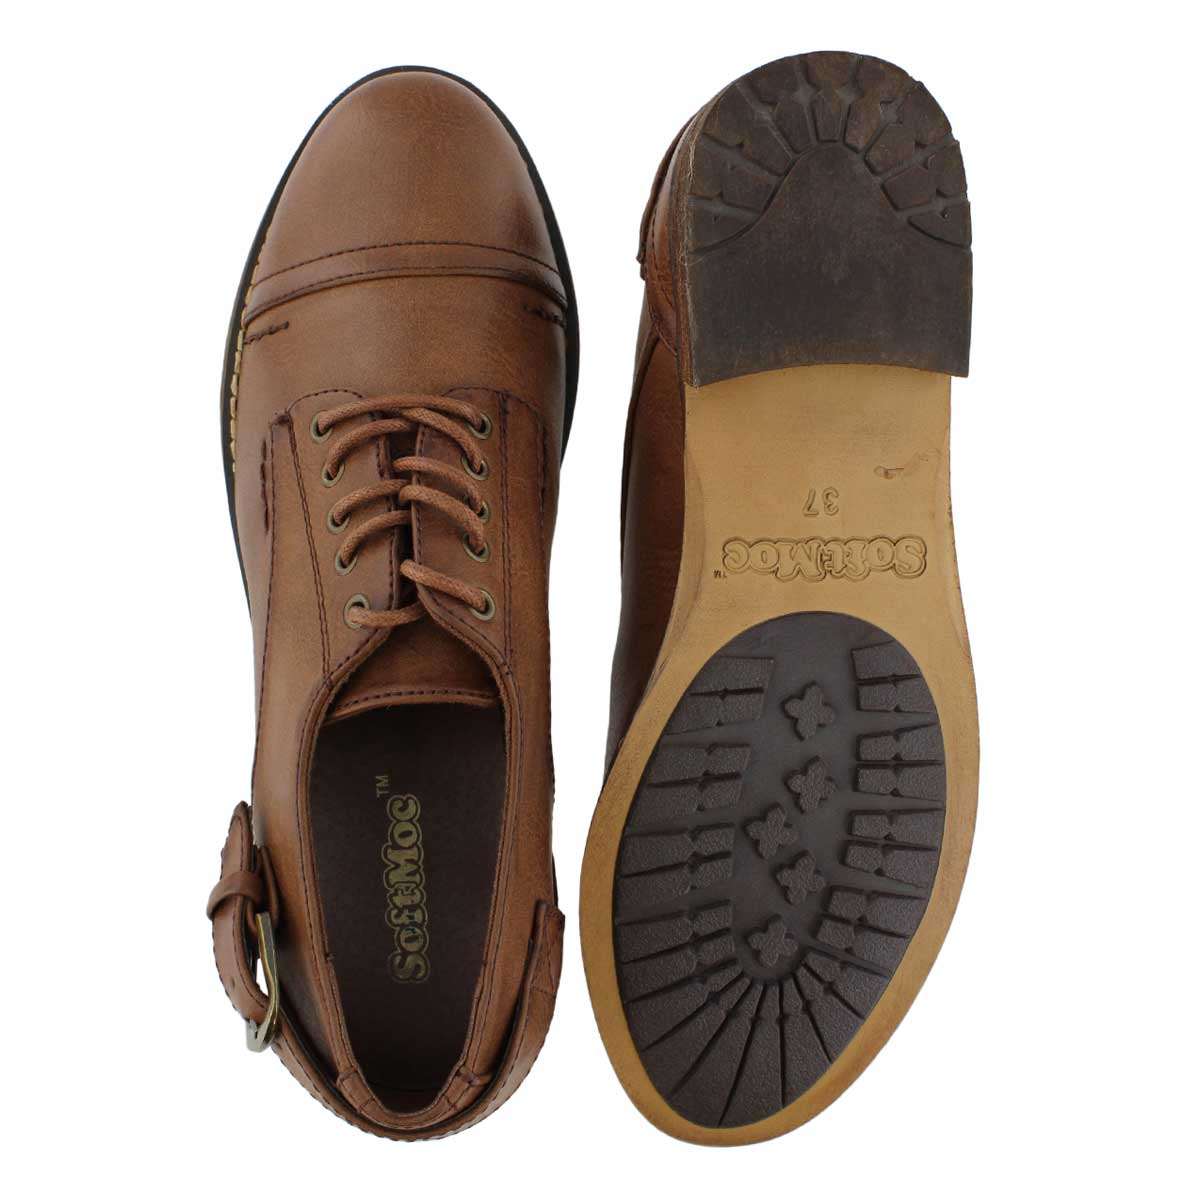 Lds Talisa brown casual oxford shoe